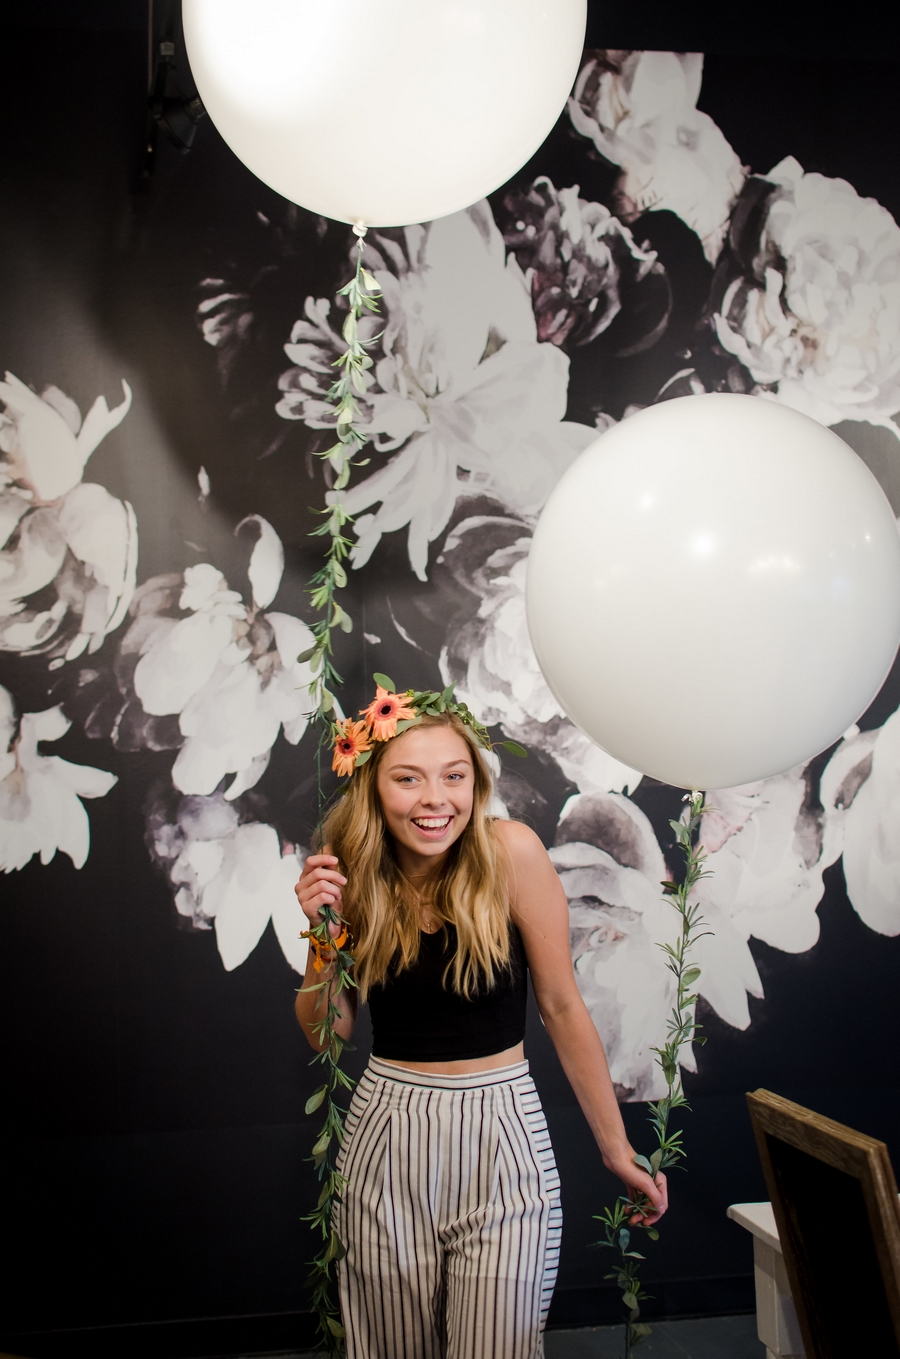 Sweet-16-Flower-Crown-Birthday-Party-City-Farmhouse-Nashville-Photographers+21